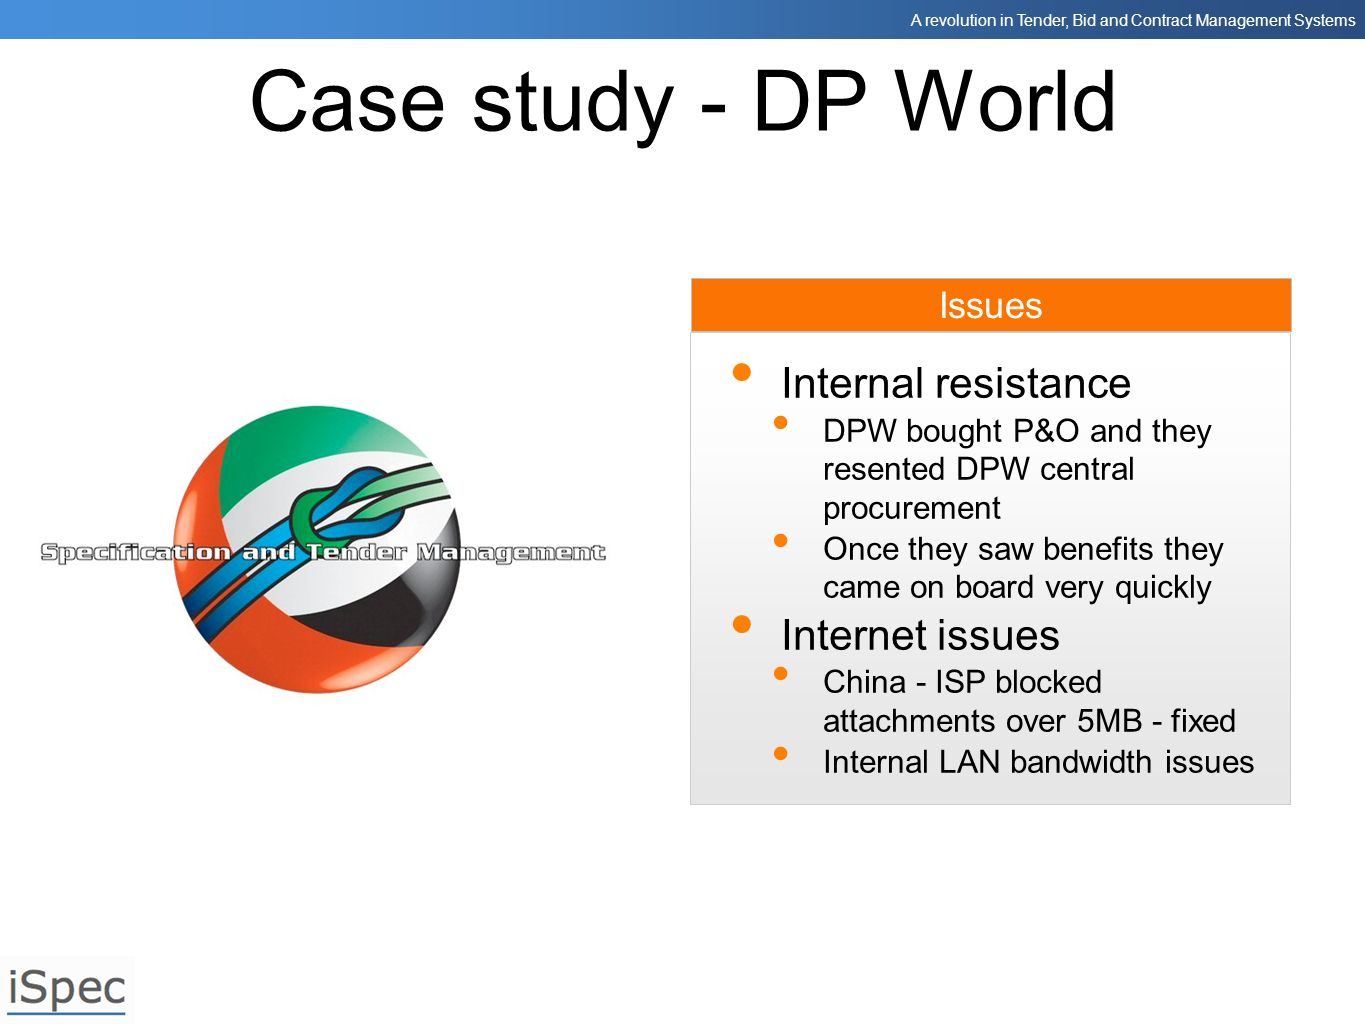 Case study - DP World Internal resistance Internet issues Issues